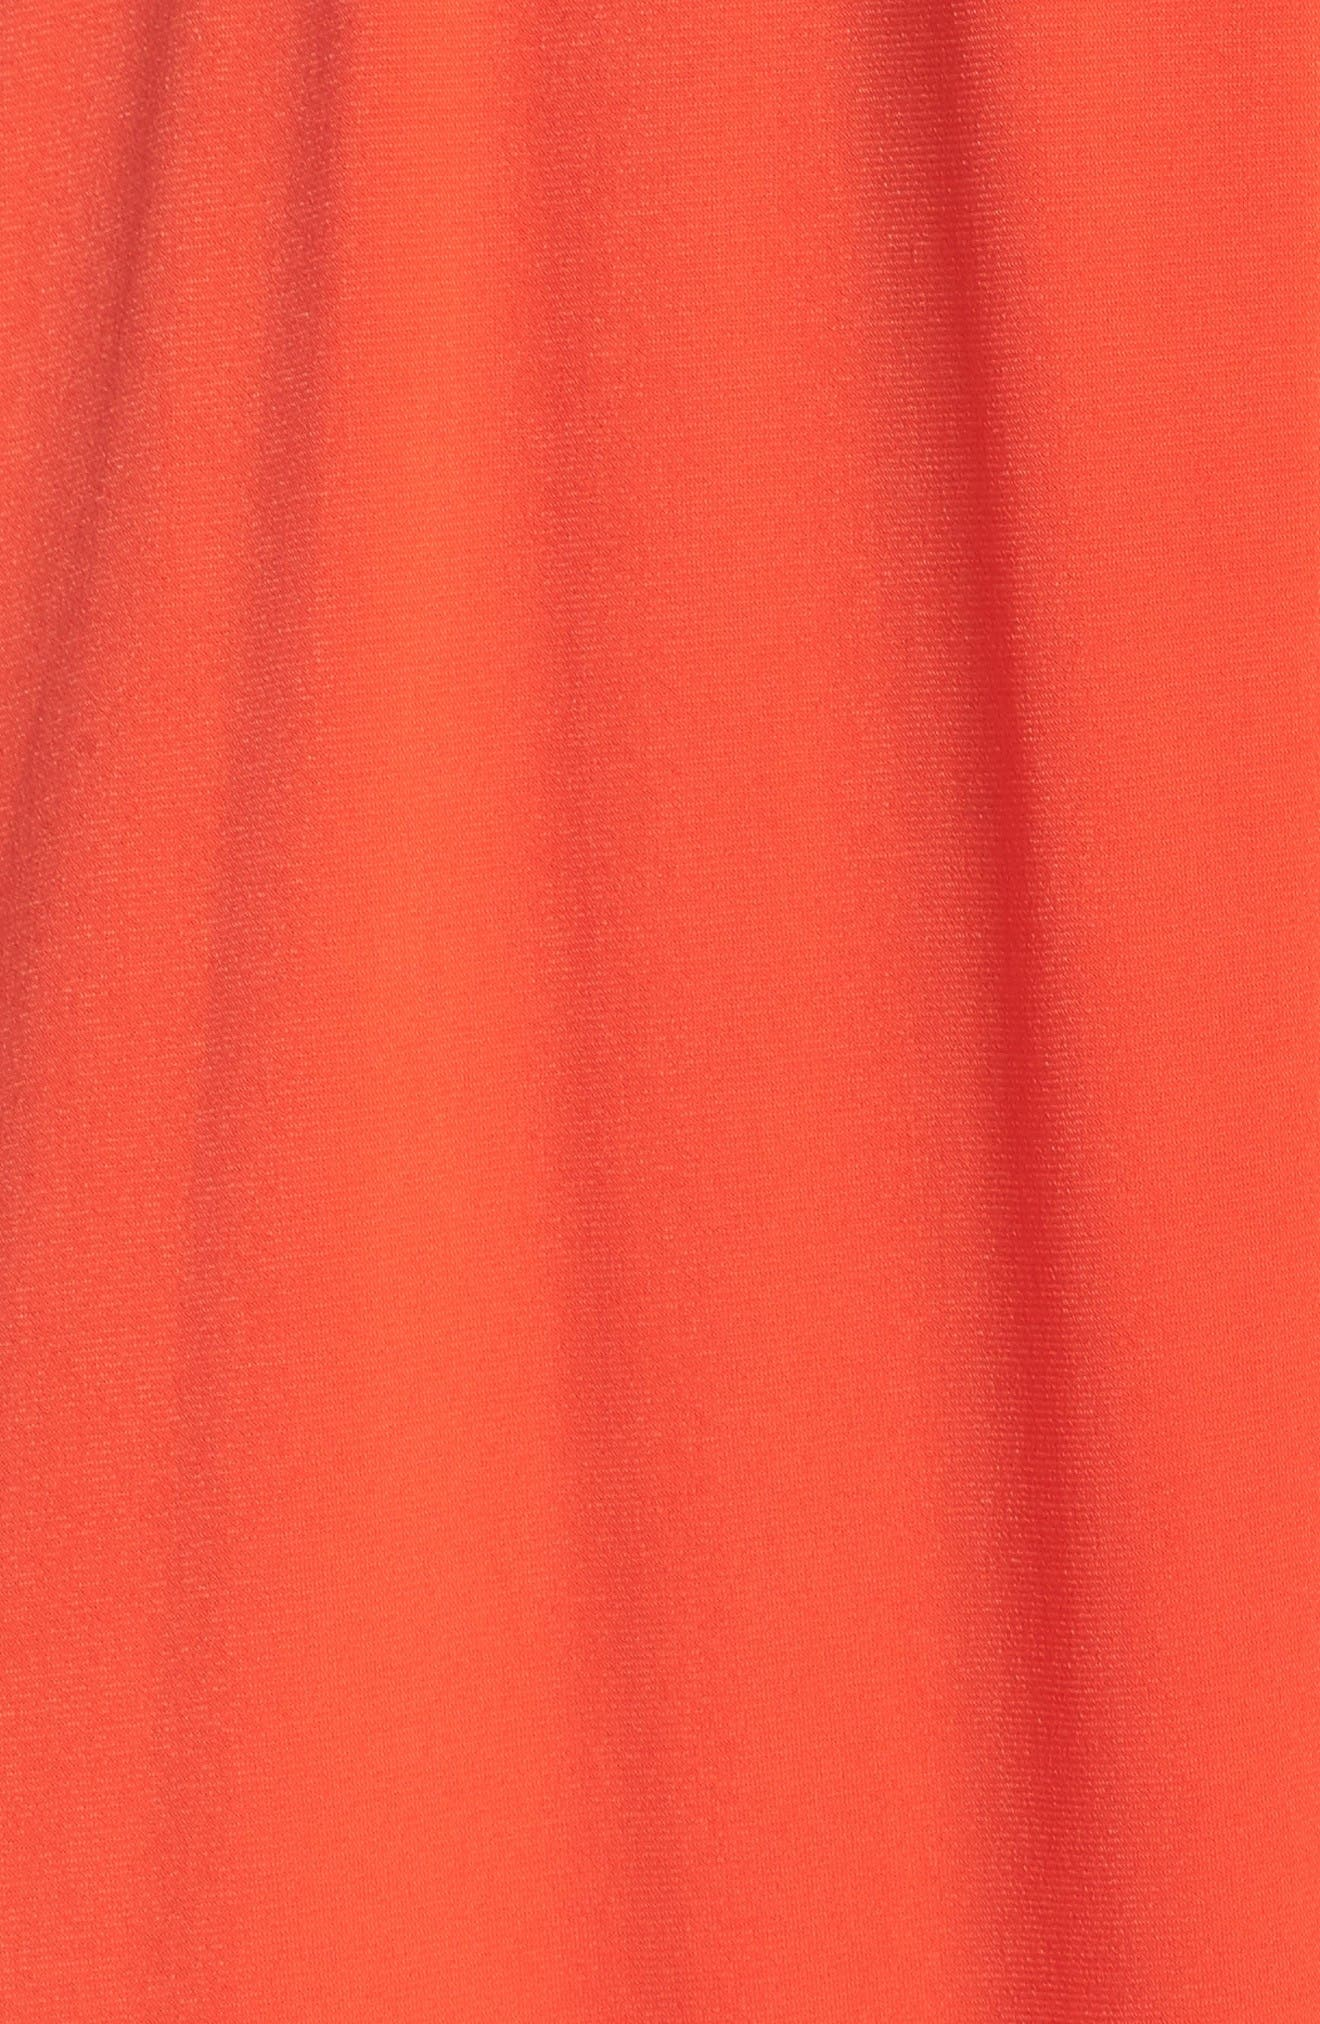 Midi Dress,                             Alternate thumbnail 6, color,                             Poppy